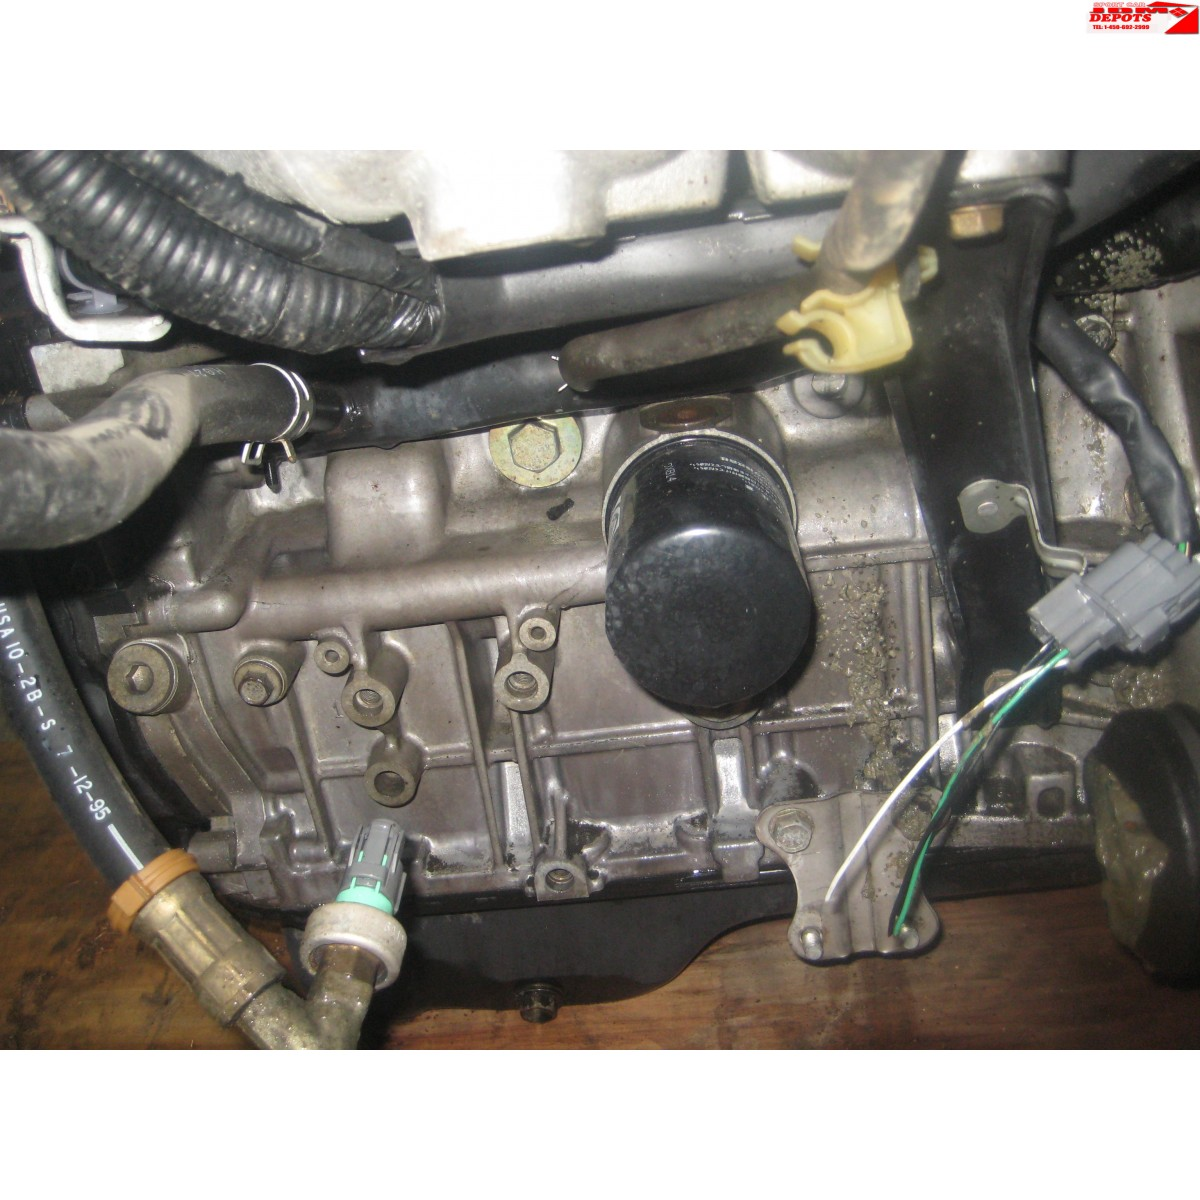 YOUR No.1 SOURCE FOR ALL JDM ENGINES, JDM TRANSMISSIONS